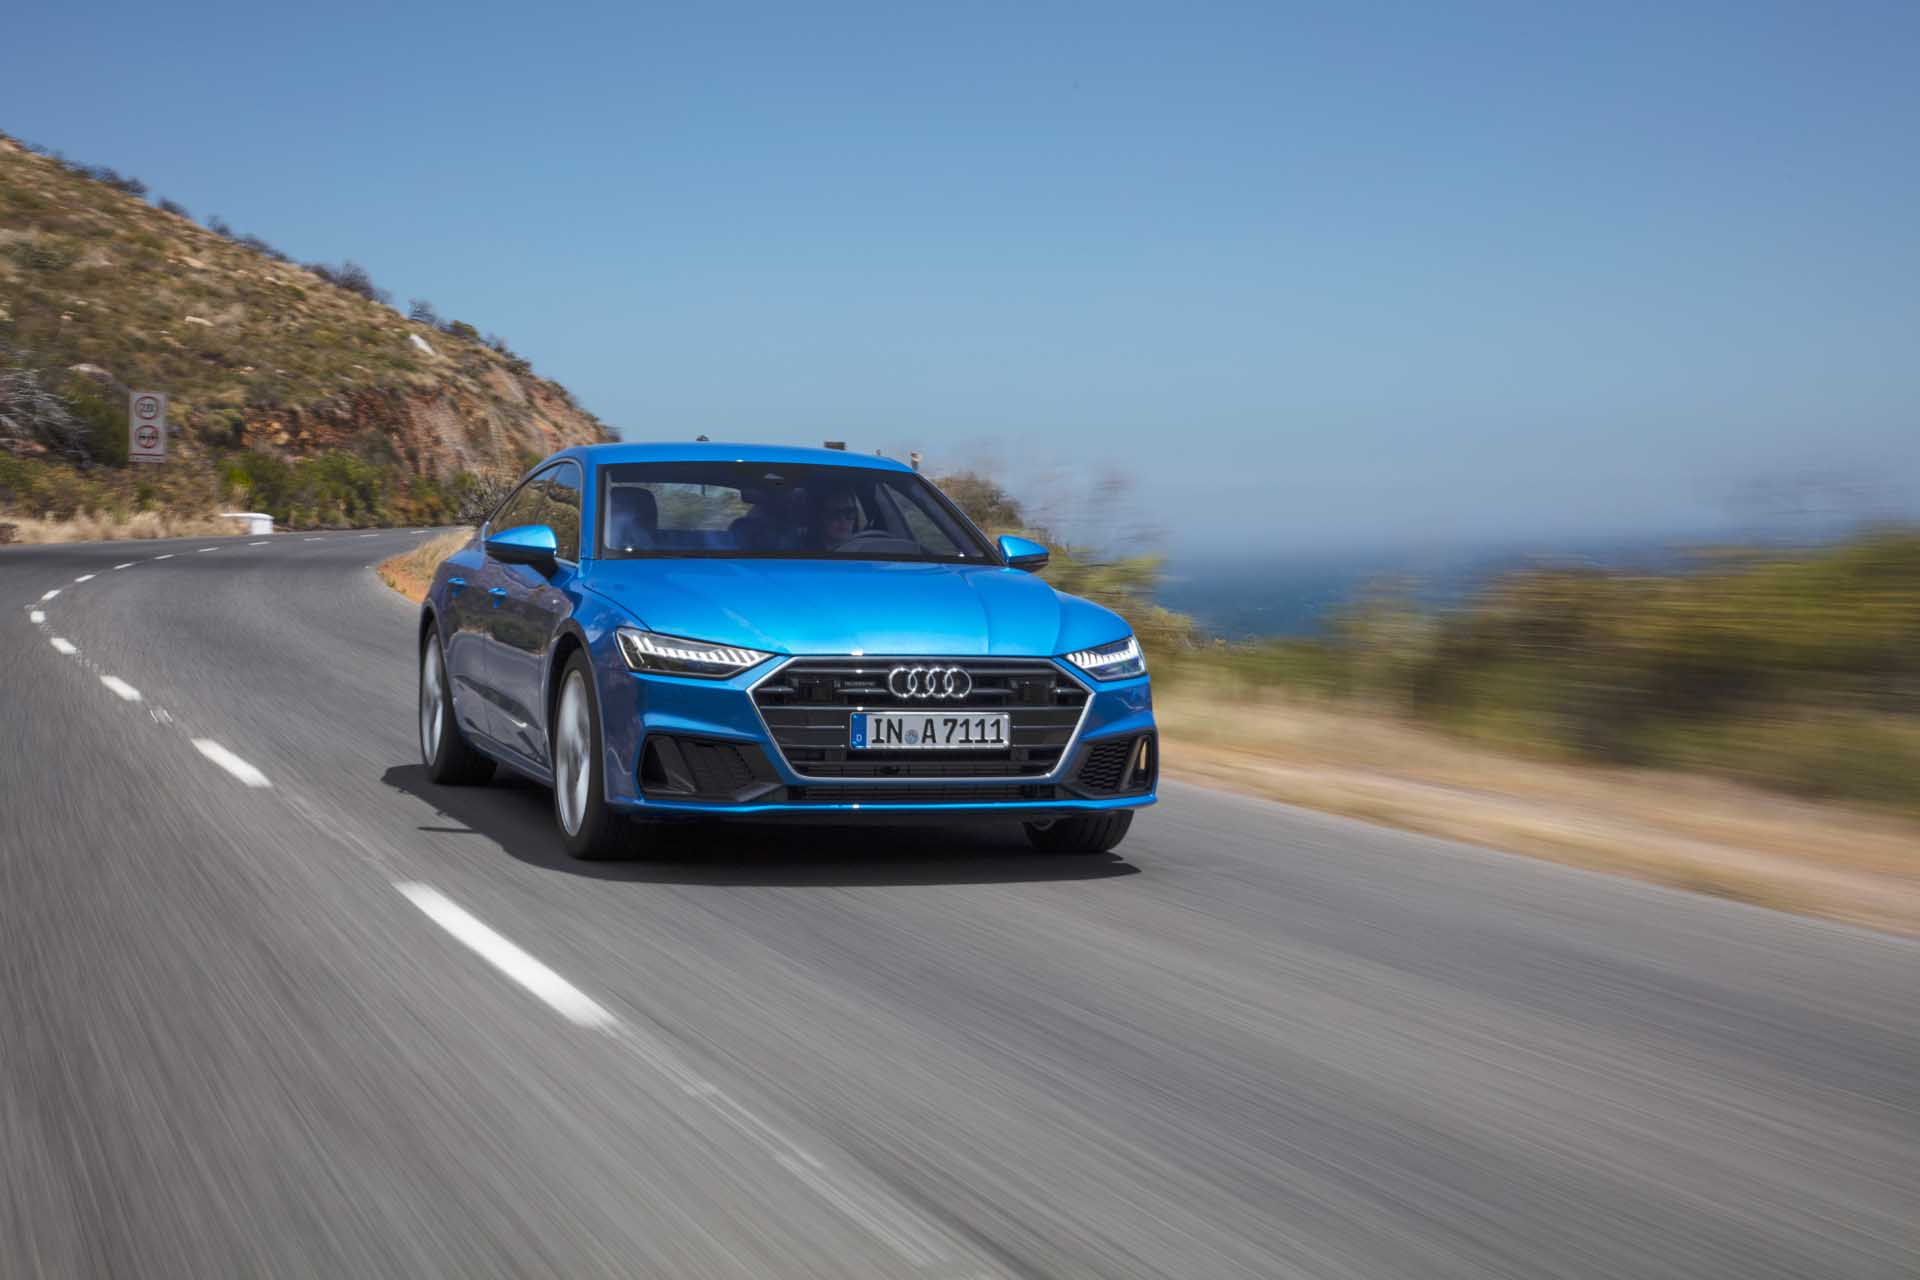 2021 Audi A7 Review, Ratings, Specs, Prices, and Photos ...